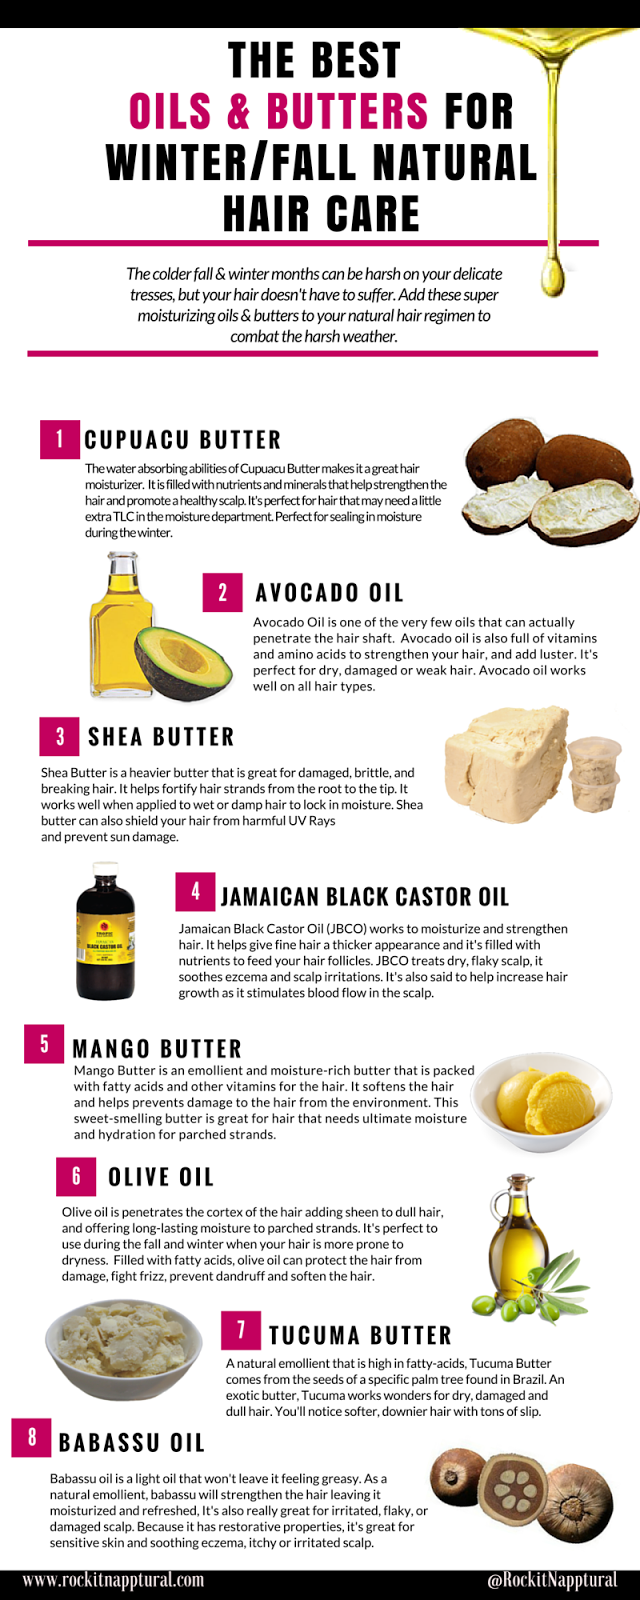 The Best Oils & Butters for Winter & Fall Hair Care